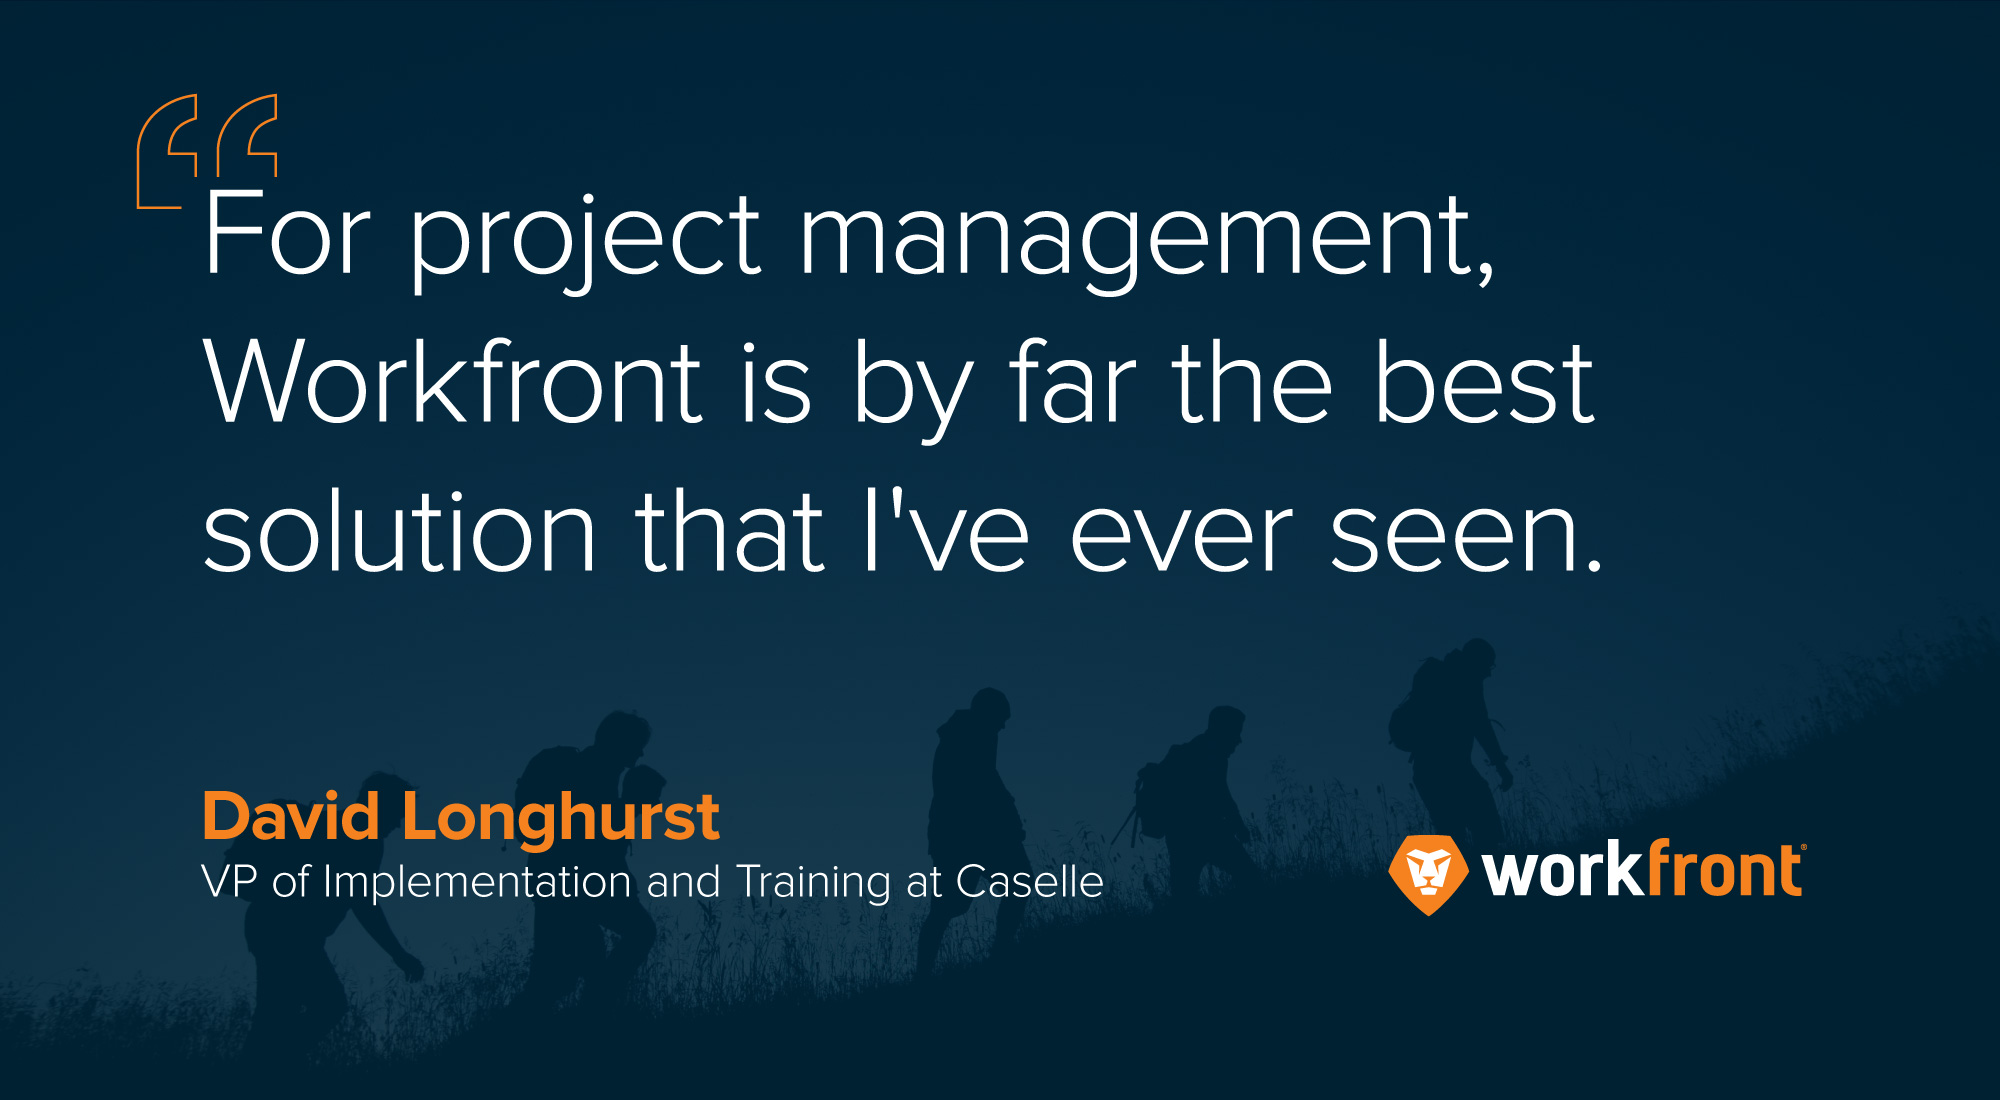 Workfront case study